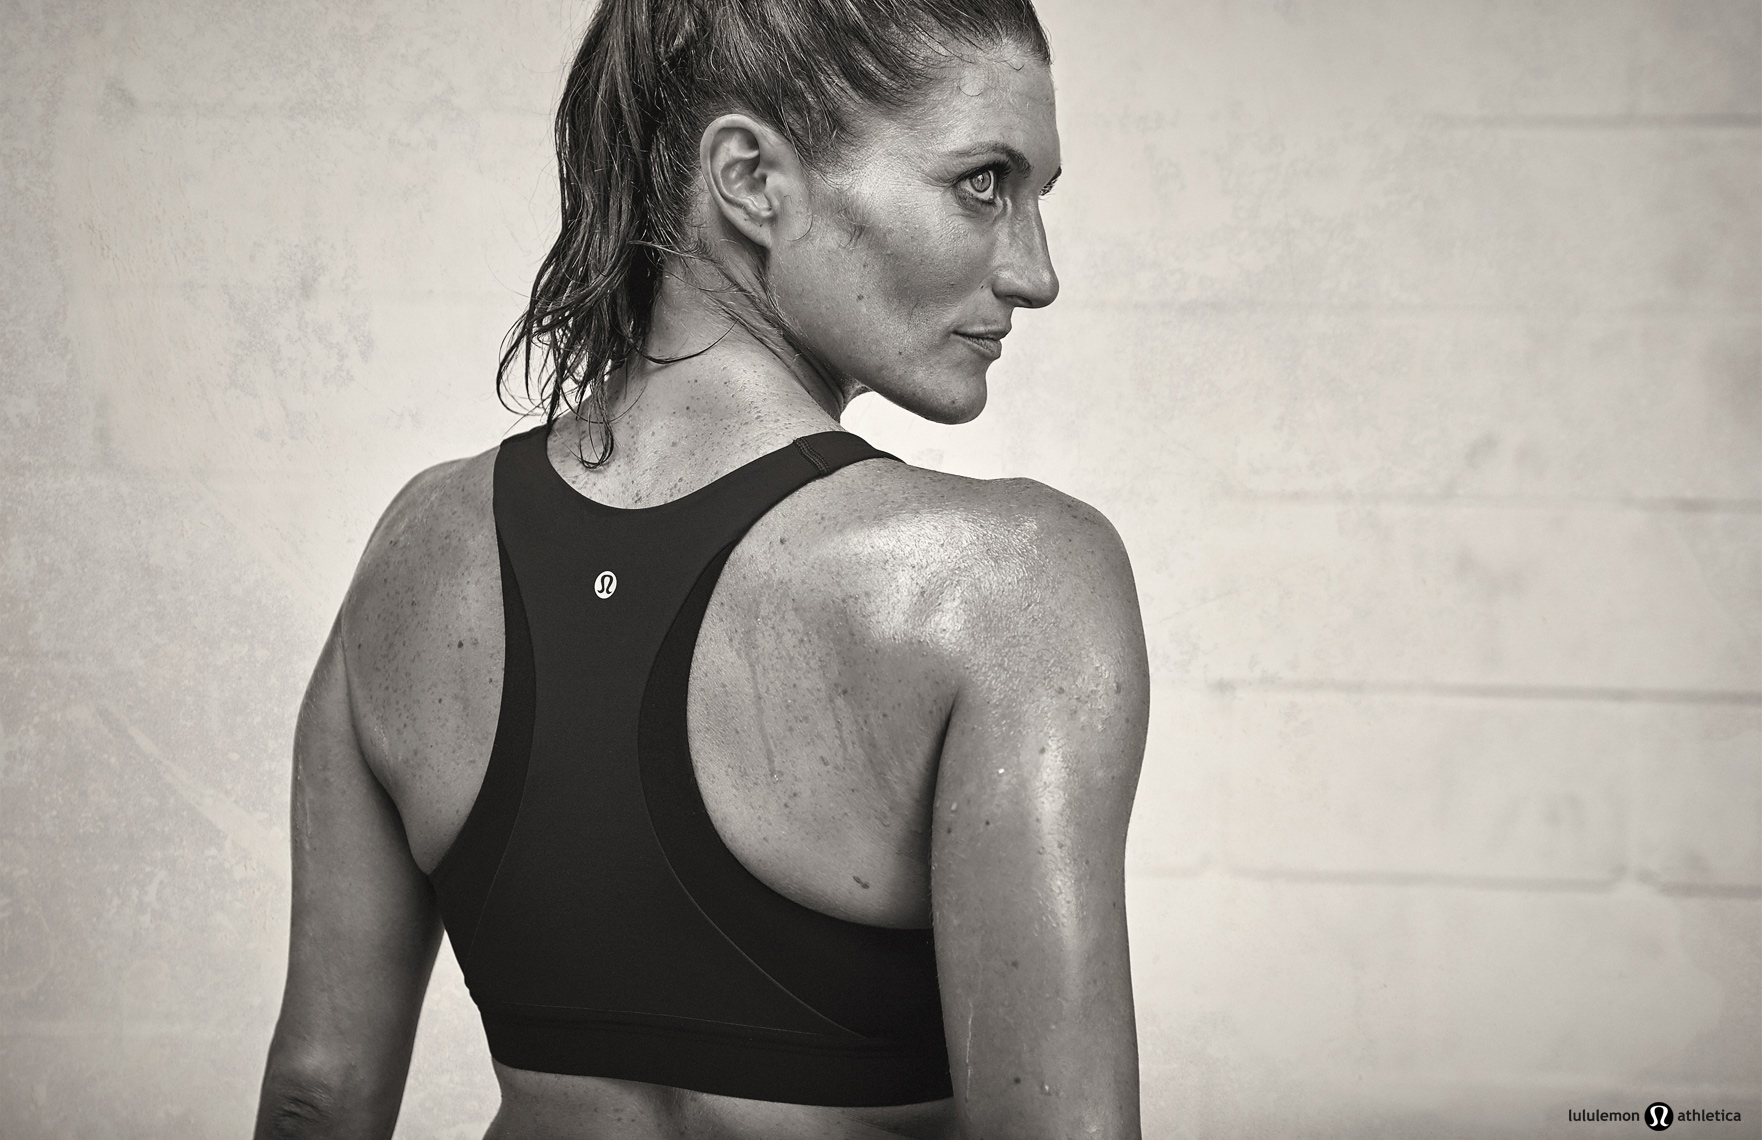 lululemon advertising campaign with female athlete wearing sportswear by Vancouver advertising photographer Waldy Martens